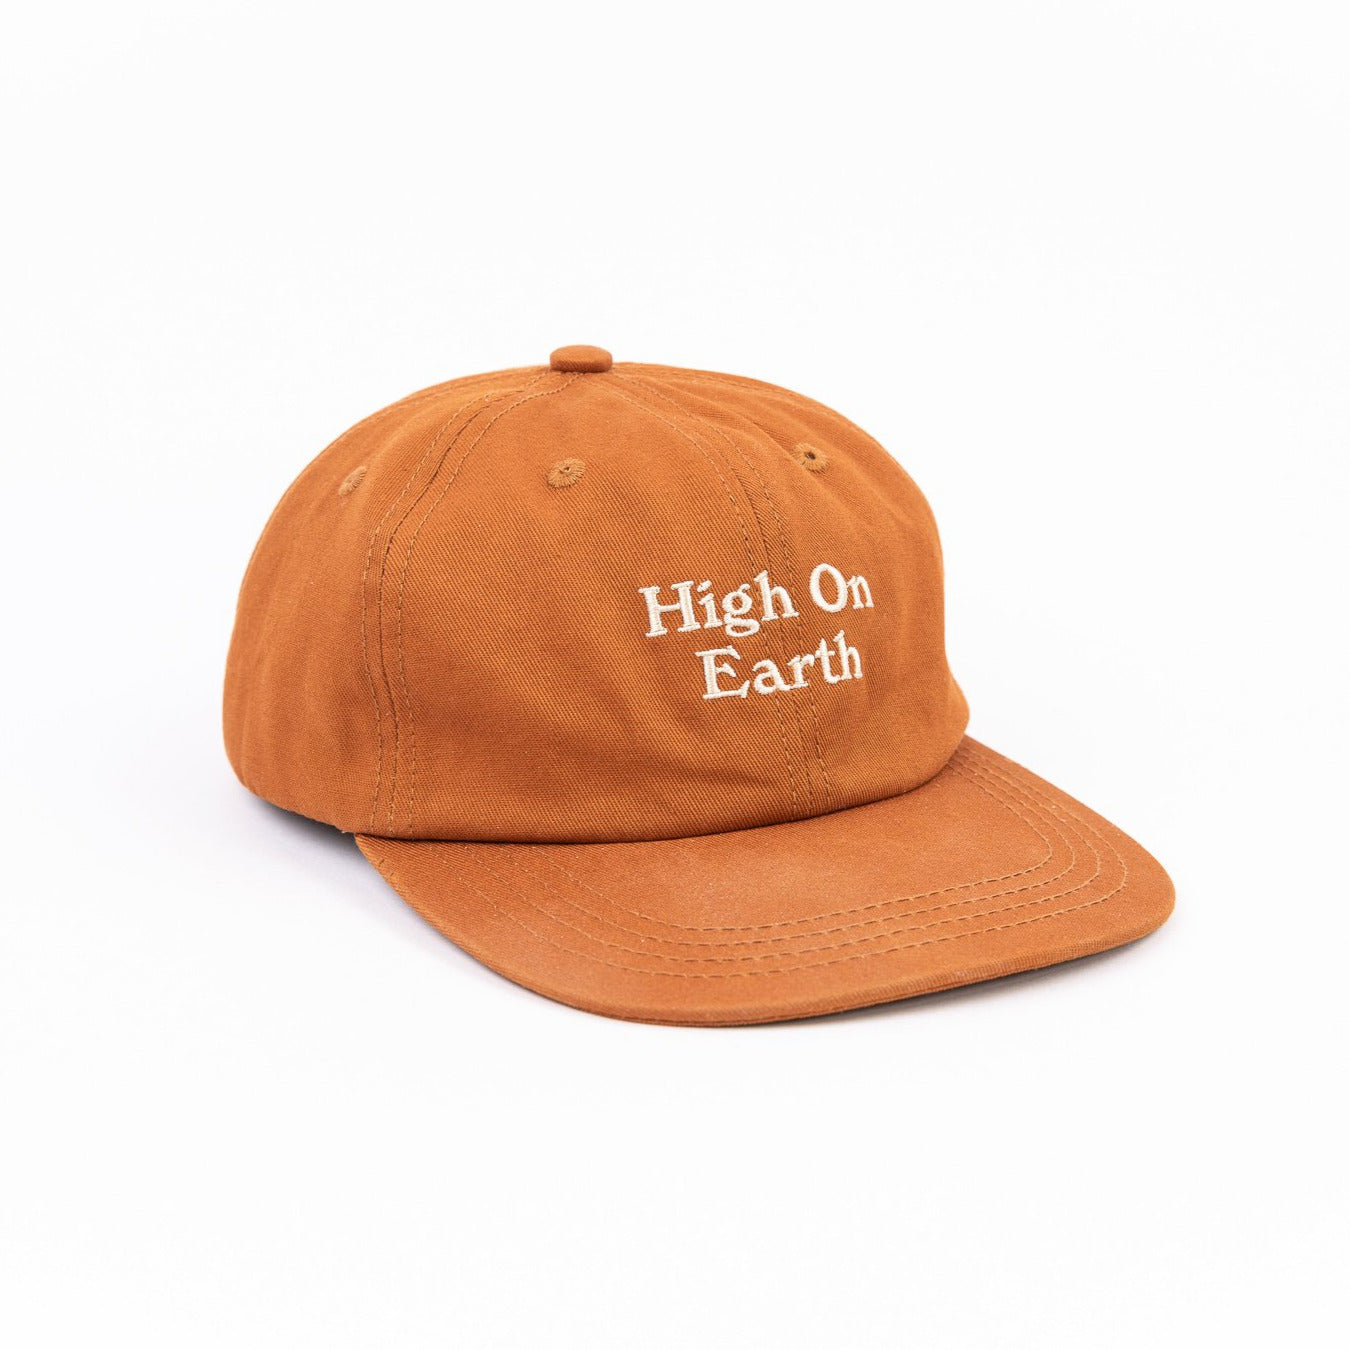 High On Earth hat